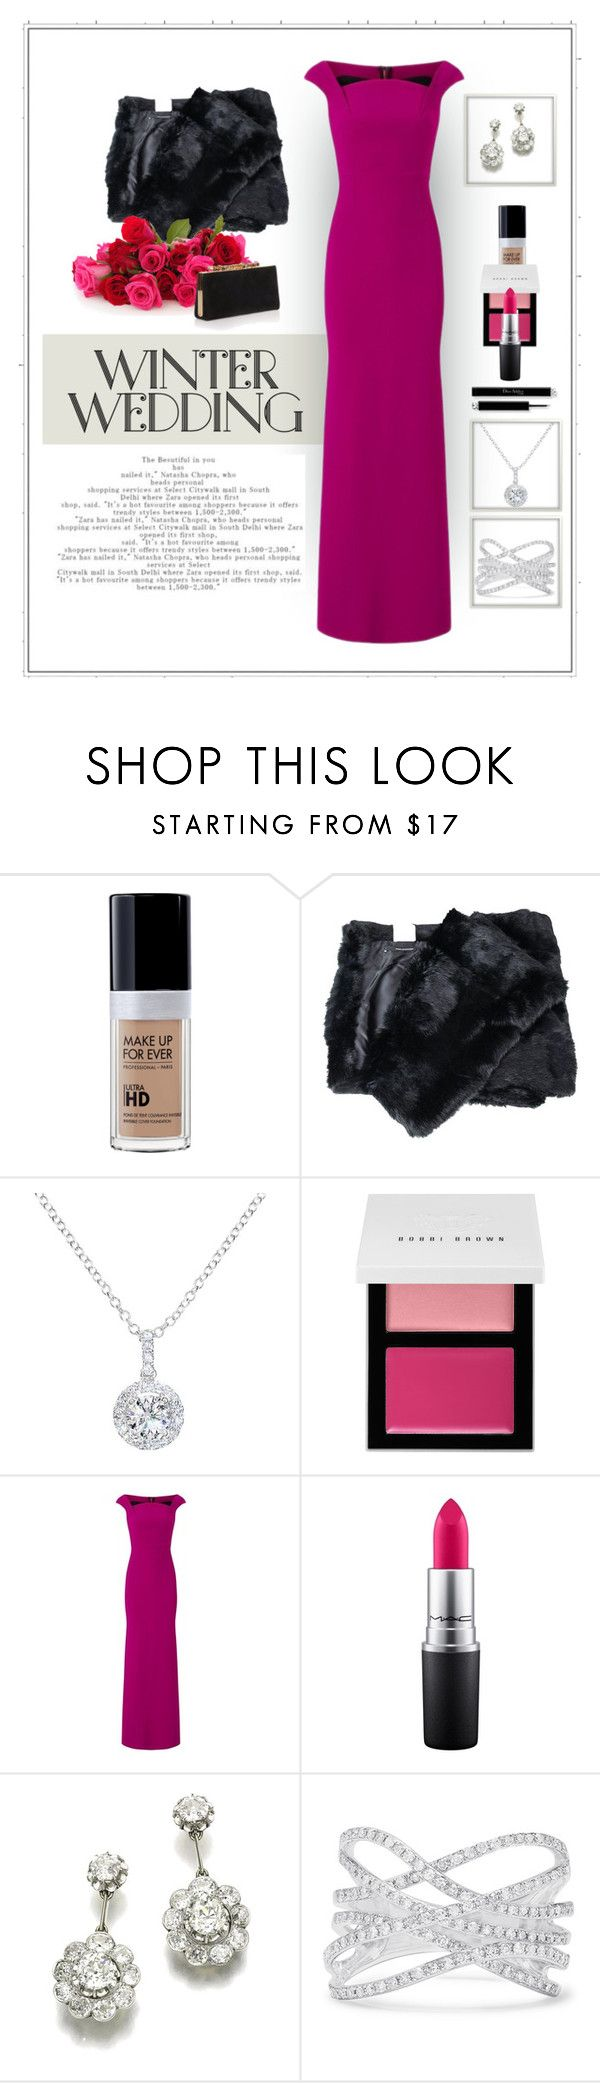 """""""Winter Wedding"""" by patricia-dimmick on Polyvore featuring Atos Lombardini, EWA, Bobbi Brown Cosmetics, Roland Mouret, MAC Cosmetics, Effy Jewelry, Jimmy Choo, gown and winterwedding"""